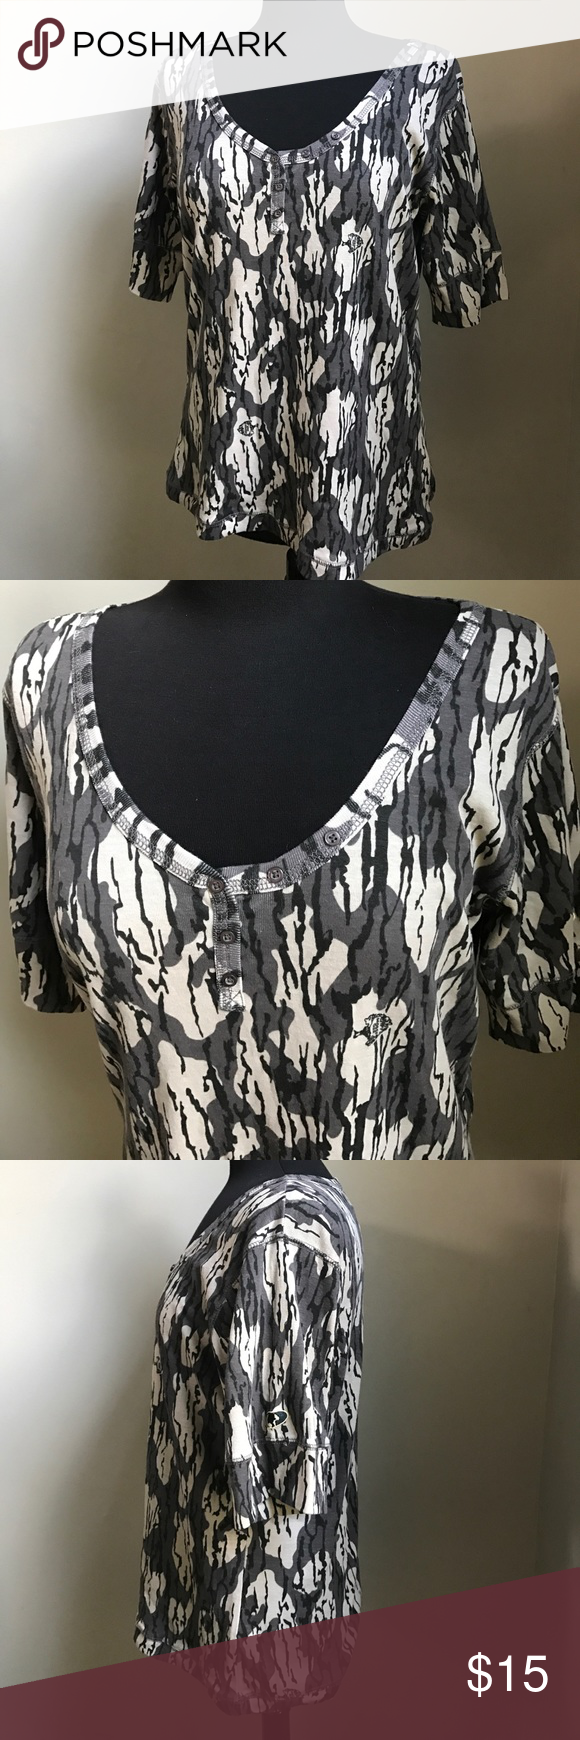 Mossy Oak Elbow Length Women's Camo Top - XL Ready for the outdoors, this top from Mossy Oak has elbow length sleeves and a rounded neck with little button detailing. This top has a camo pattern in grey and black. This size XL top is ready to ship from a non smoking home. Mossy Oak Tops Tees - Short Sleeve